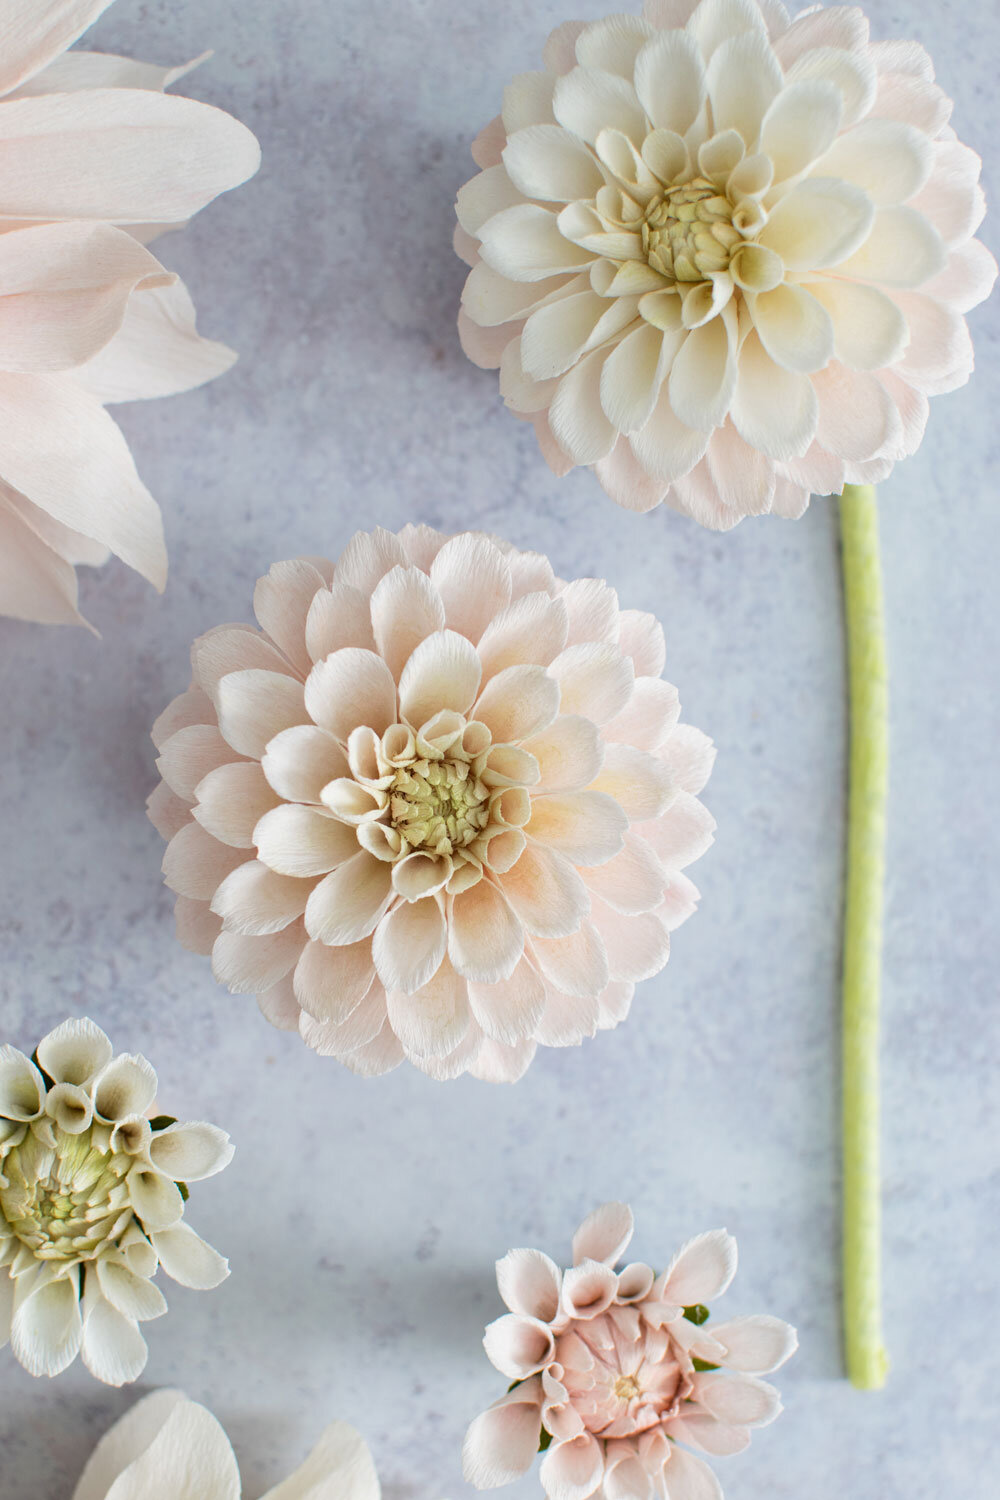 Dahlia-Sweet-Nathalie-Course-Thumbnail-for-course---Crafted-to-Bloom.jpg